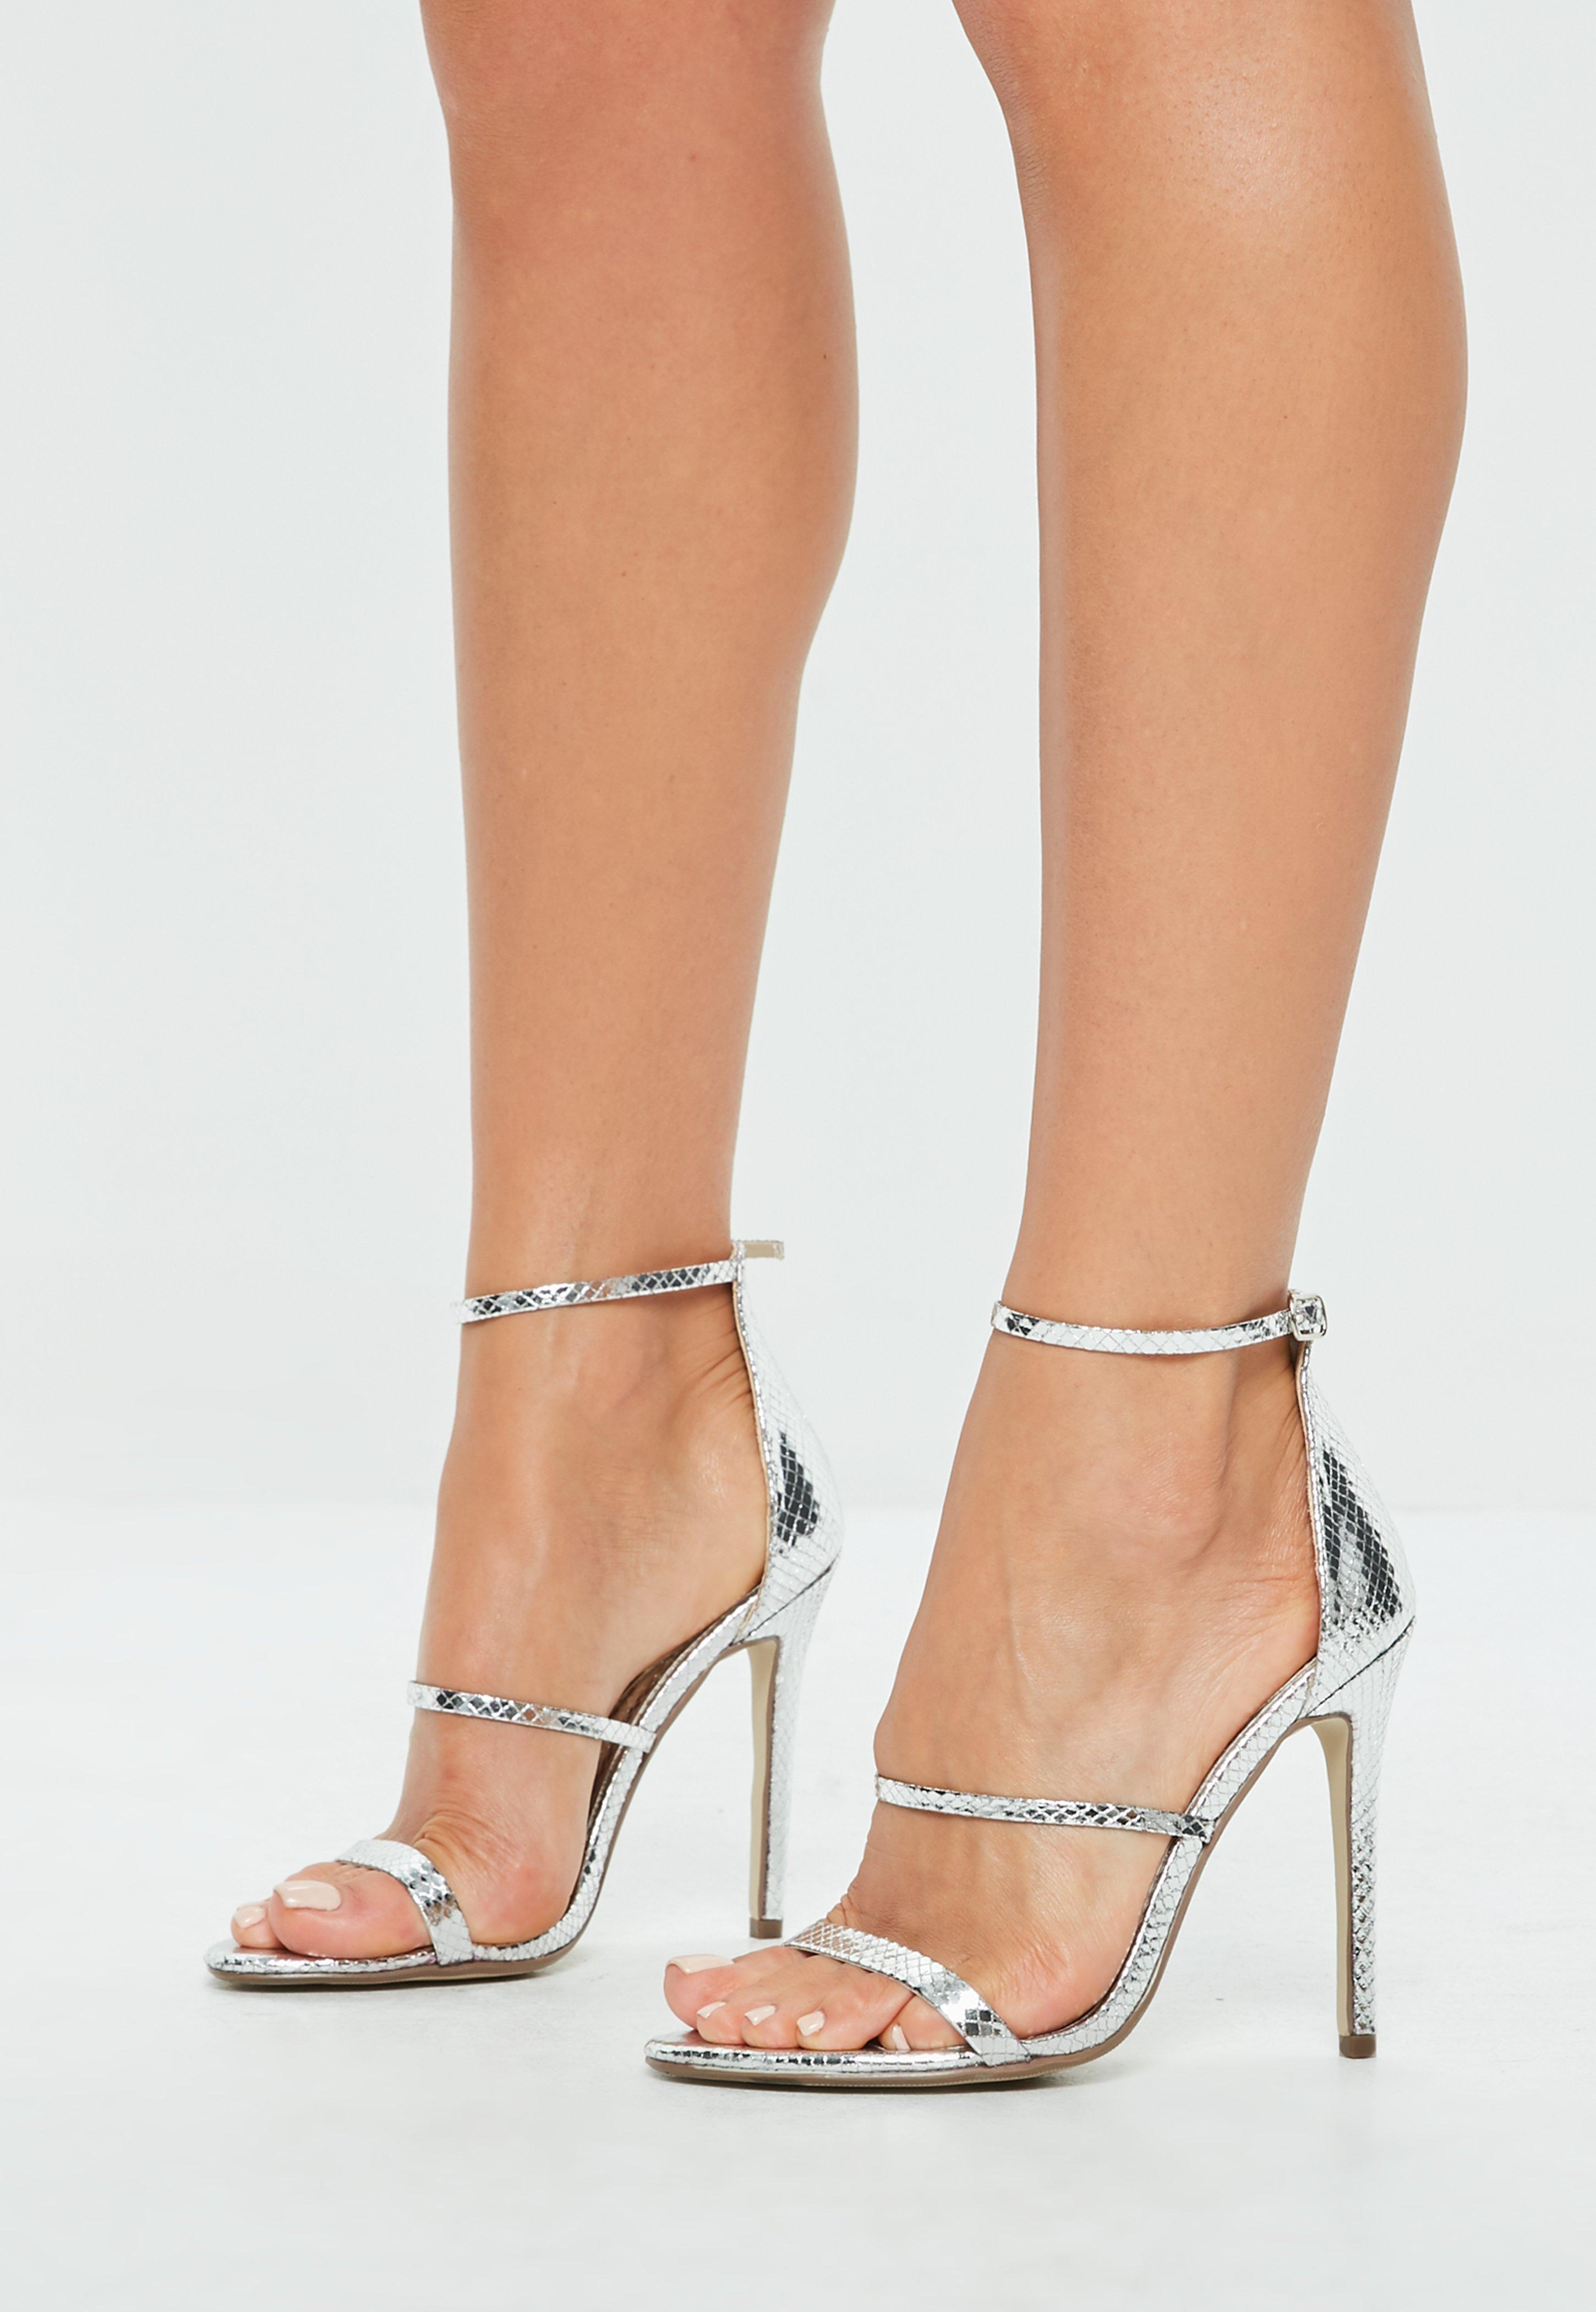 96bb0a400ba Lyst - Missguided Silver Metallic Three Strap Barely There Heels in ...